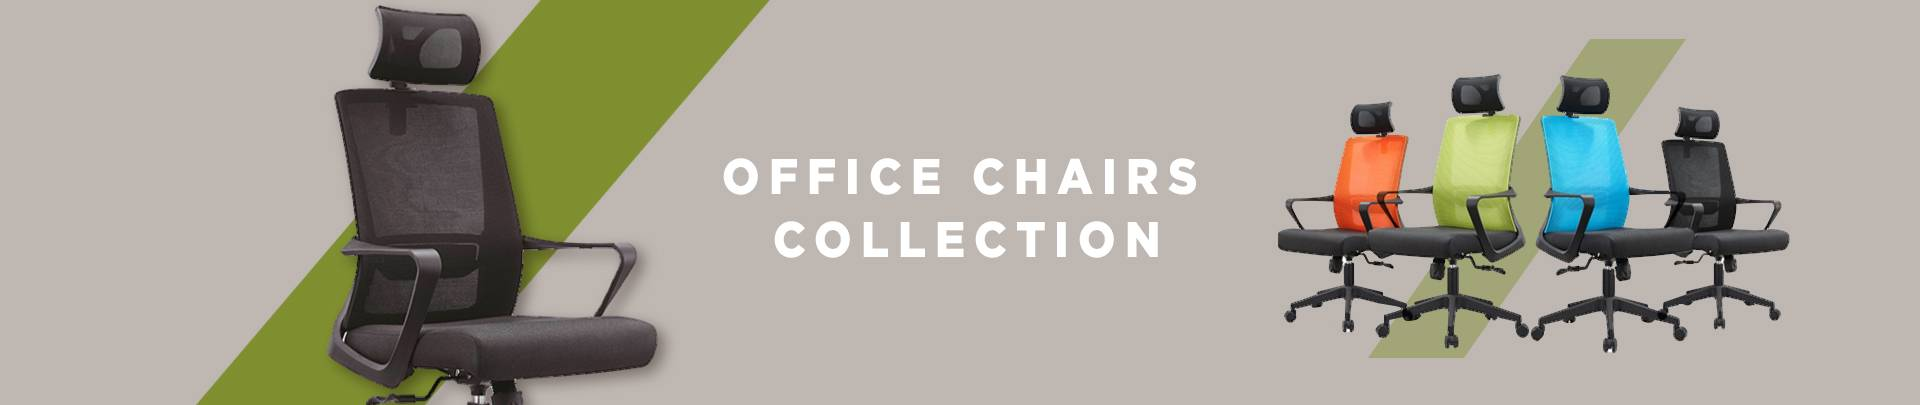 Office Chair Collection